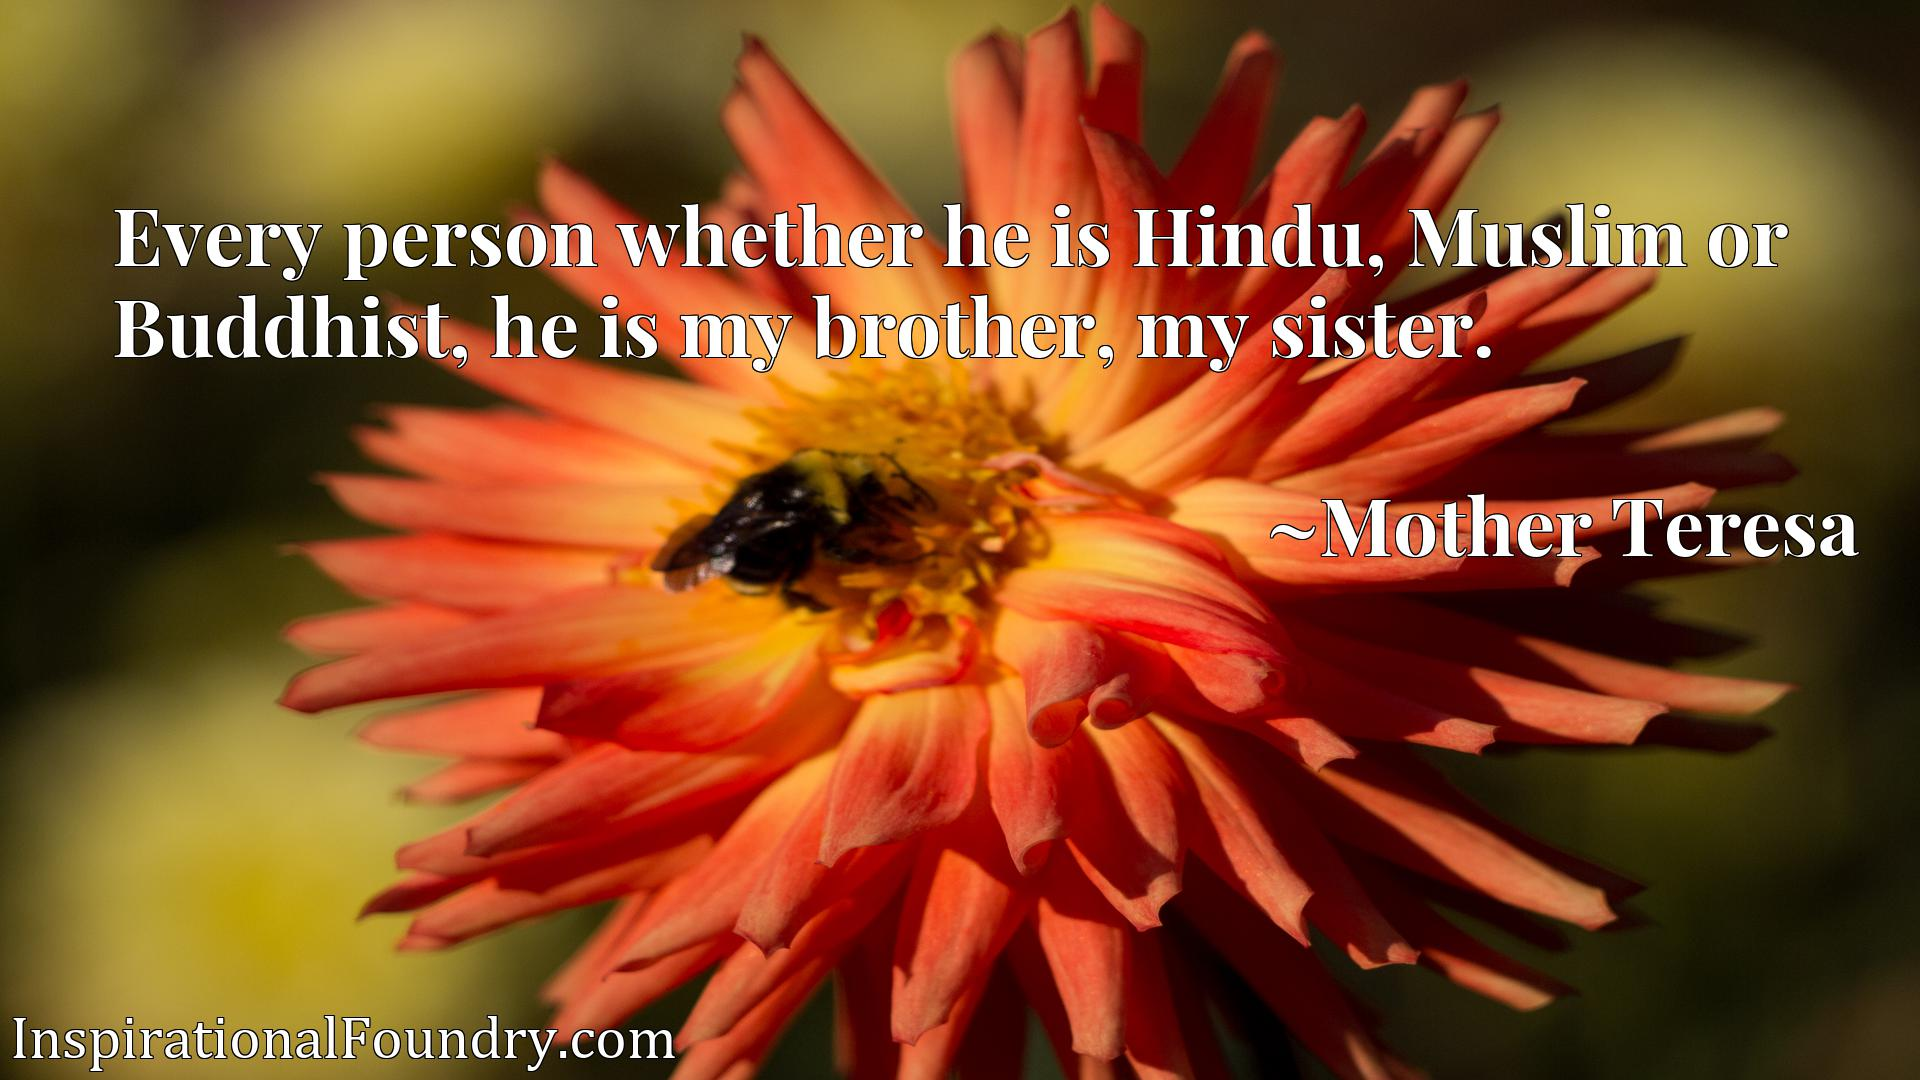 Every person whether he is Hindu, Muslim or Buddhist, he is my brother, my sister.